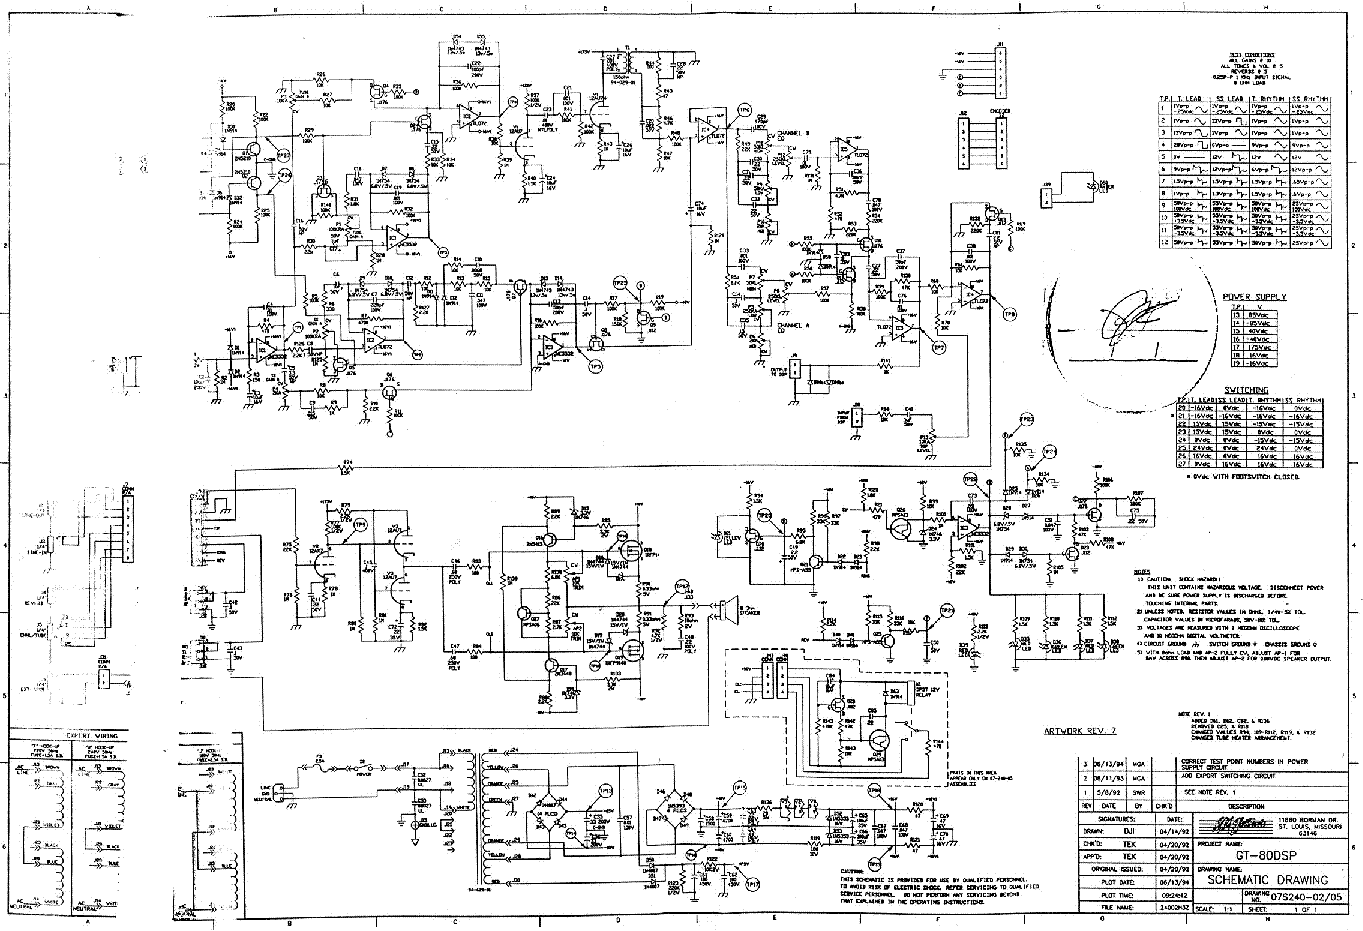 Wiring Diagram Crate Amplifier